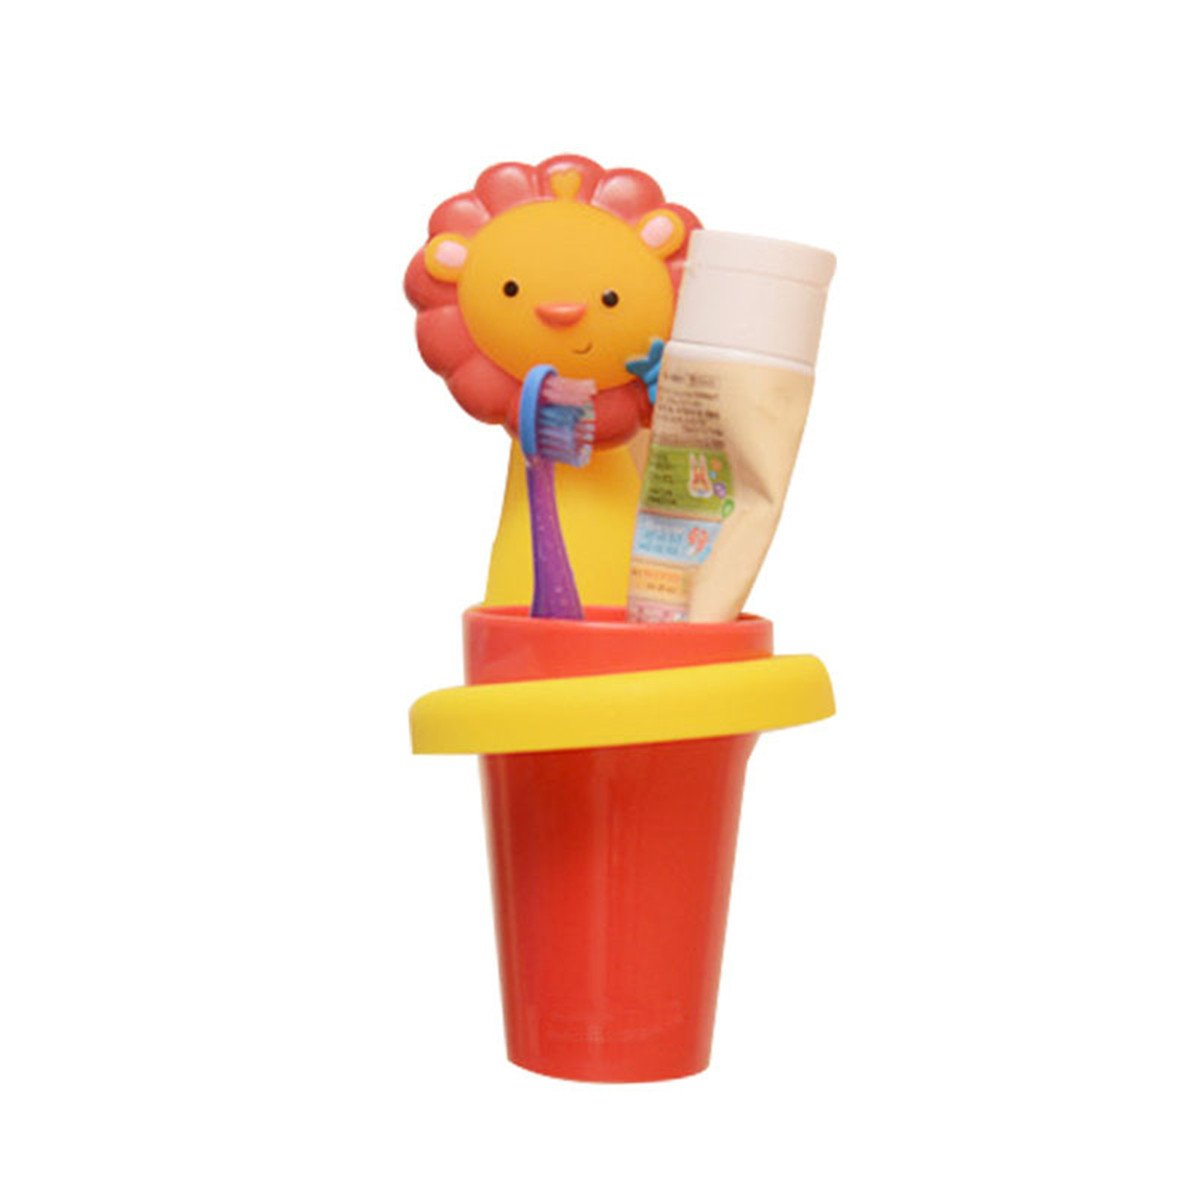 WDHome Kids Cartoon Toothbrush Holder with Rinse Cup, Child Cute Bathroom Toothbrush Wall Hanging Organizer Holder with 2 Strong Suction Cups, Animals Lion